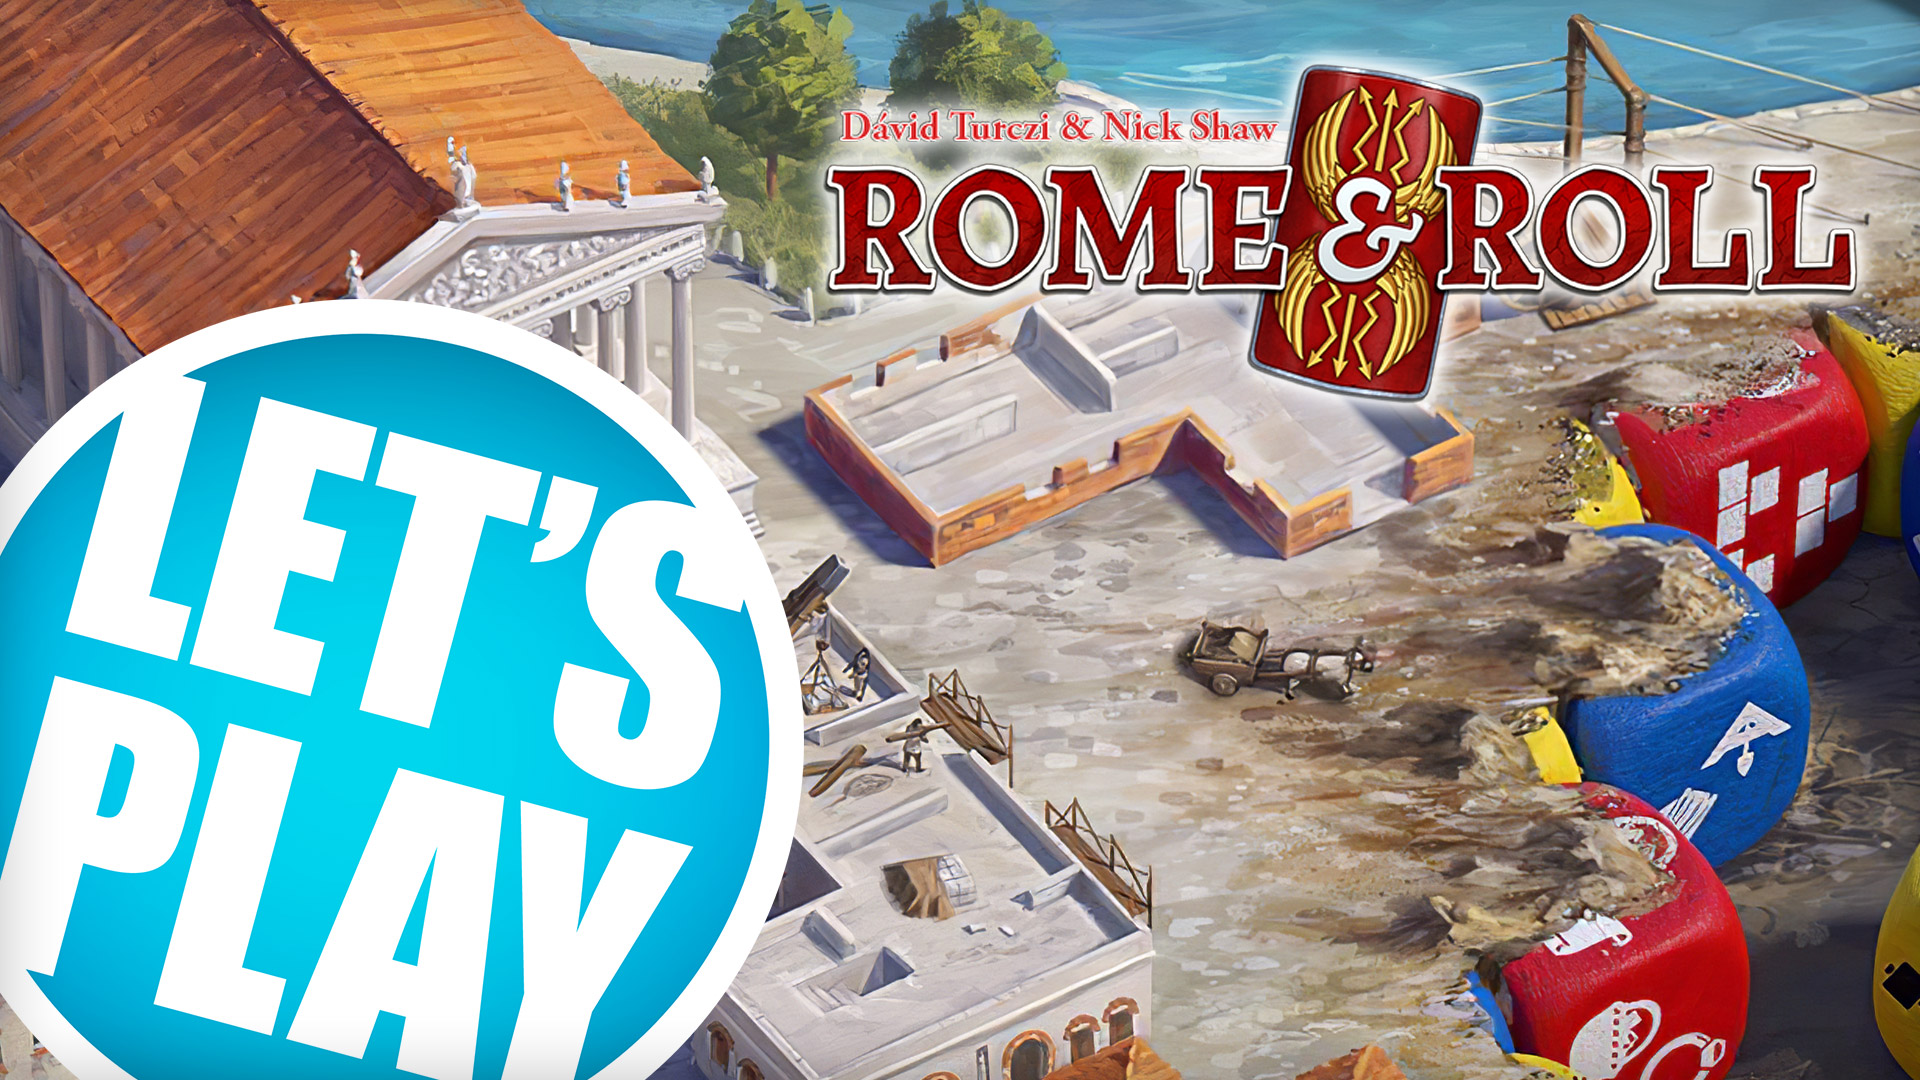 Let's-Play-Rome-&-Role-coverimage